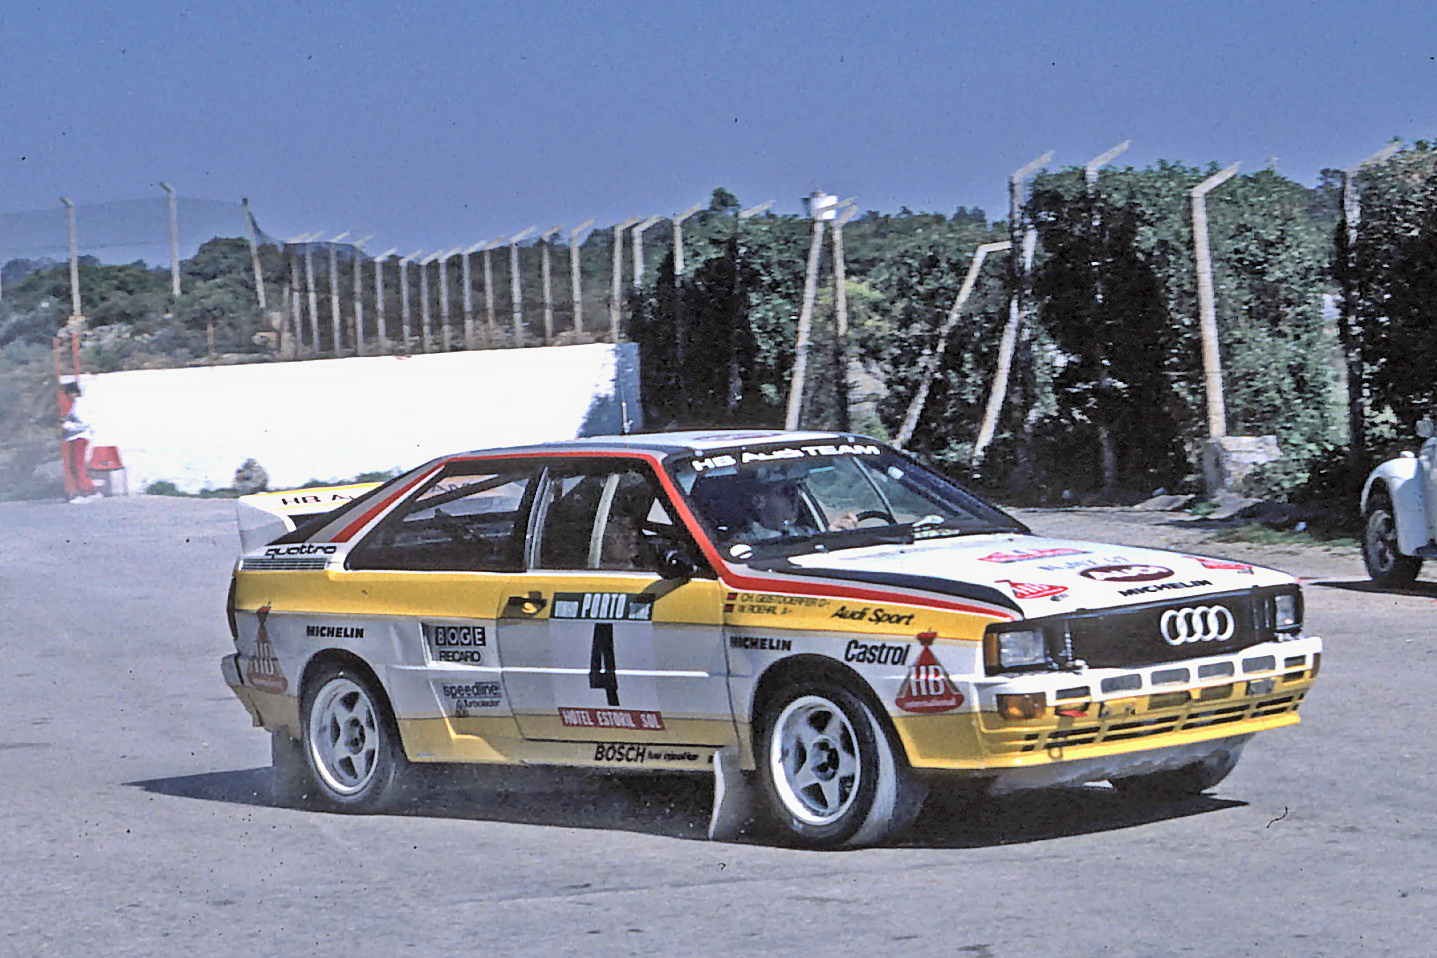 http://upload.wikimedia.org/wikipedia/commons/1/13/Portugal_84_Audi_Quattro_A2.jpg